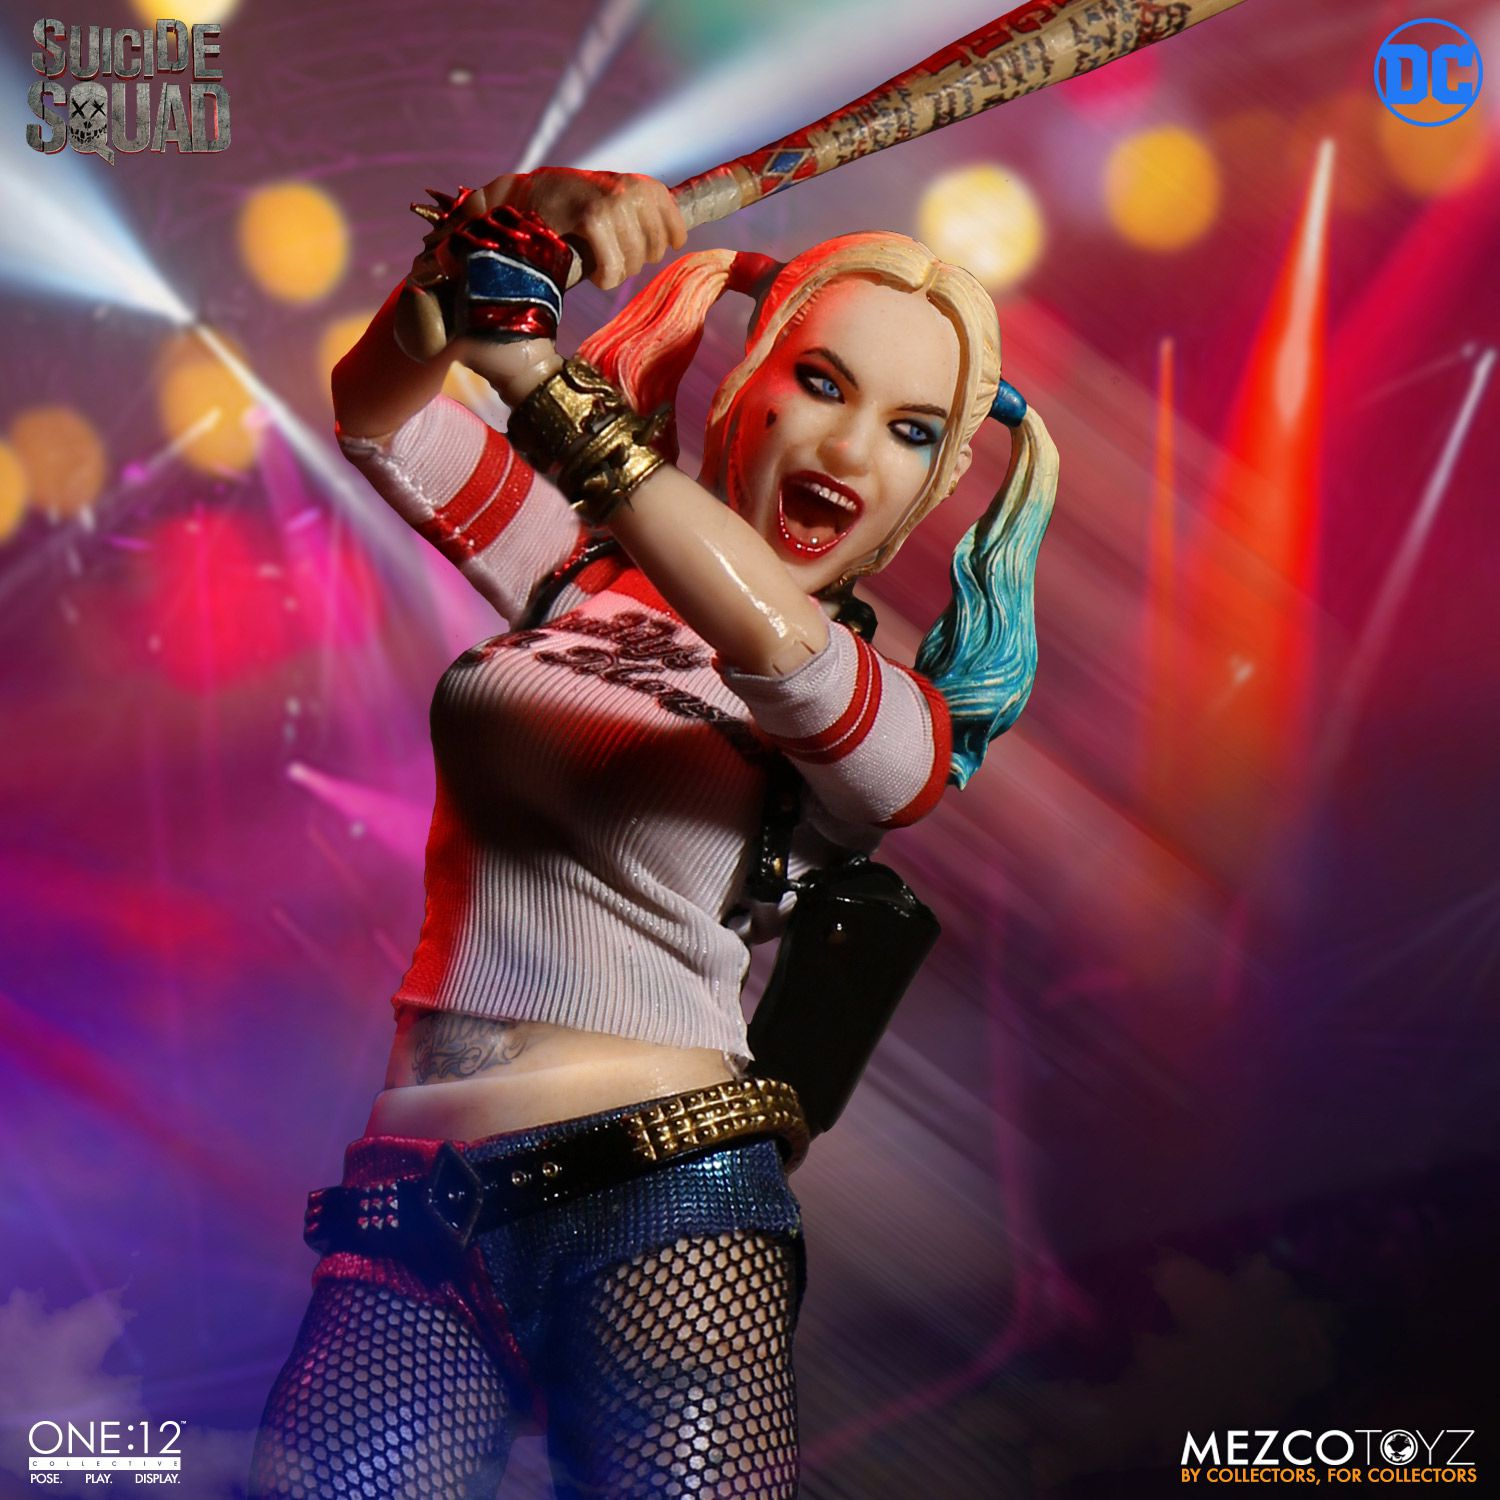 Black And Orange Wallpaper One 12 Collective Suicide Squad Harley Quinn Mezco Toyz